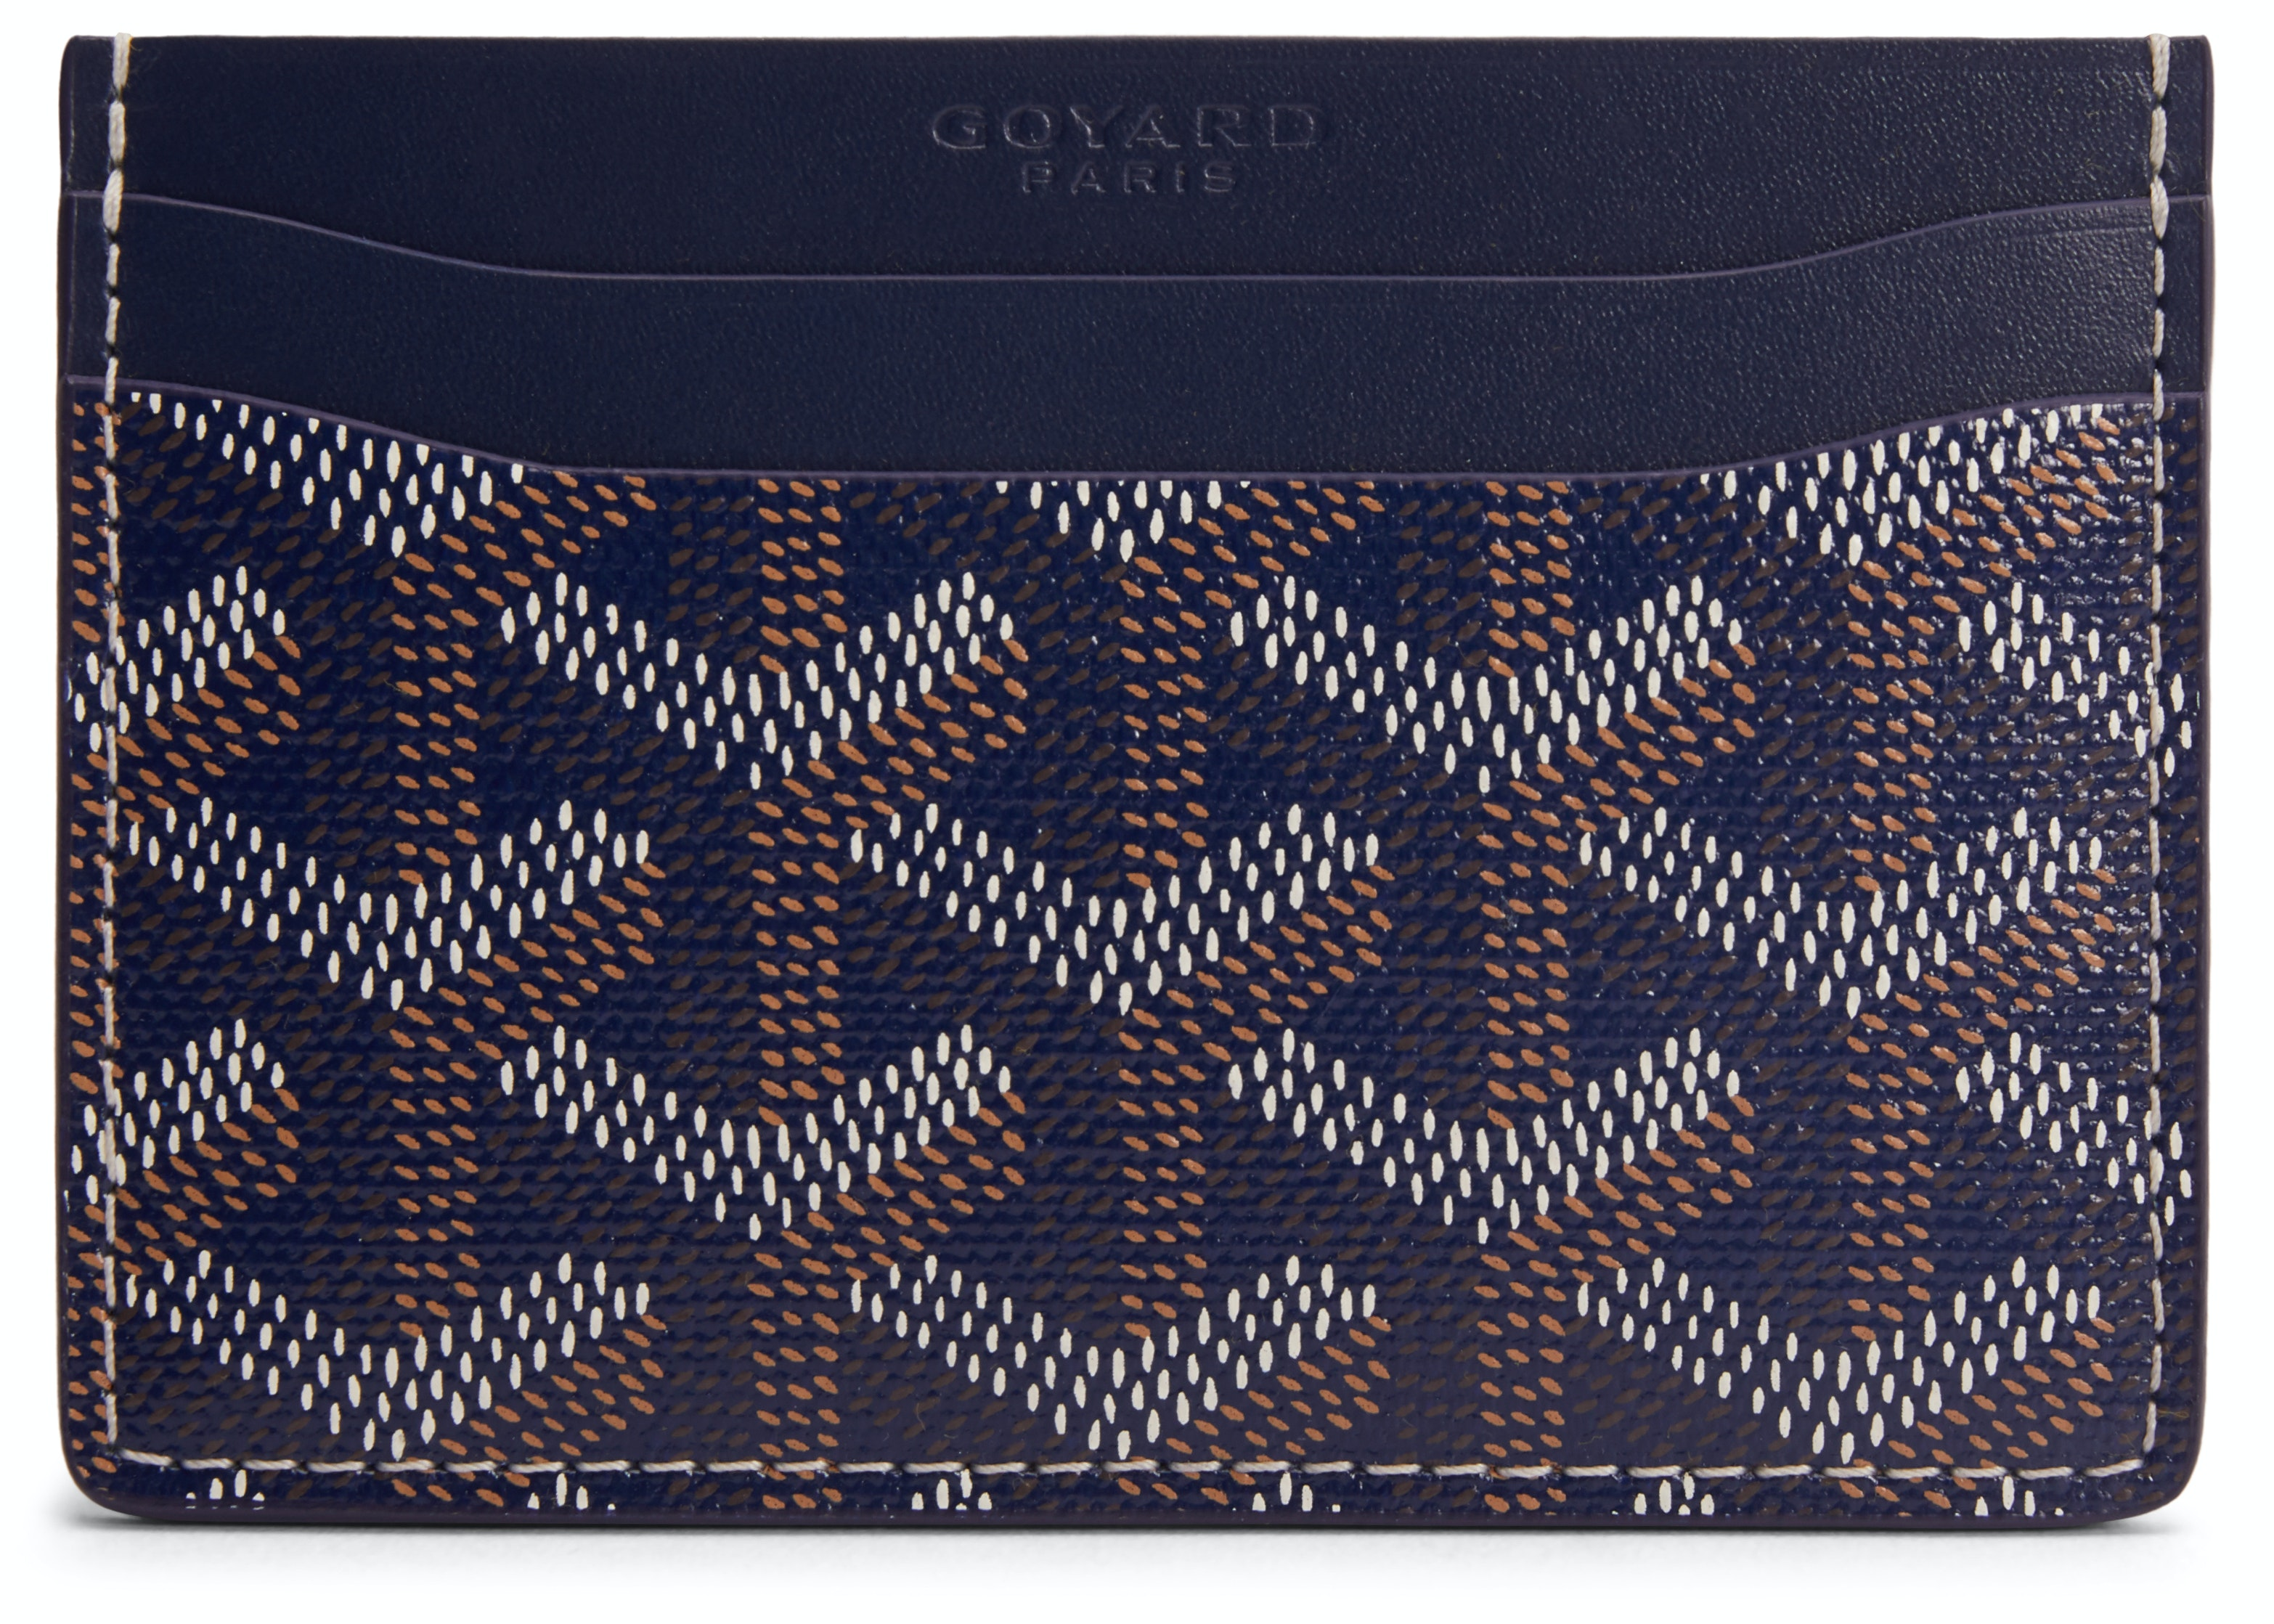 Goyard Saint Sulpice Card Holder Monogram Chevron Navy